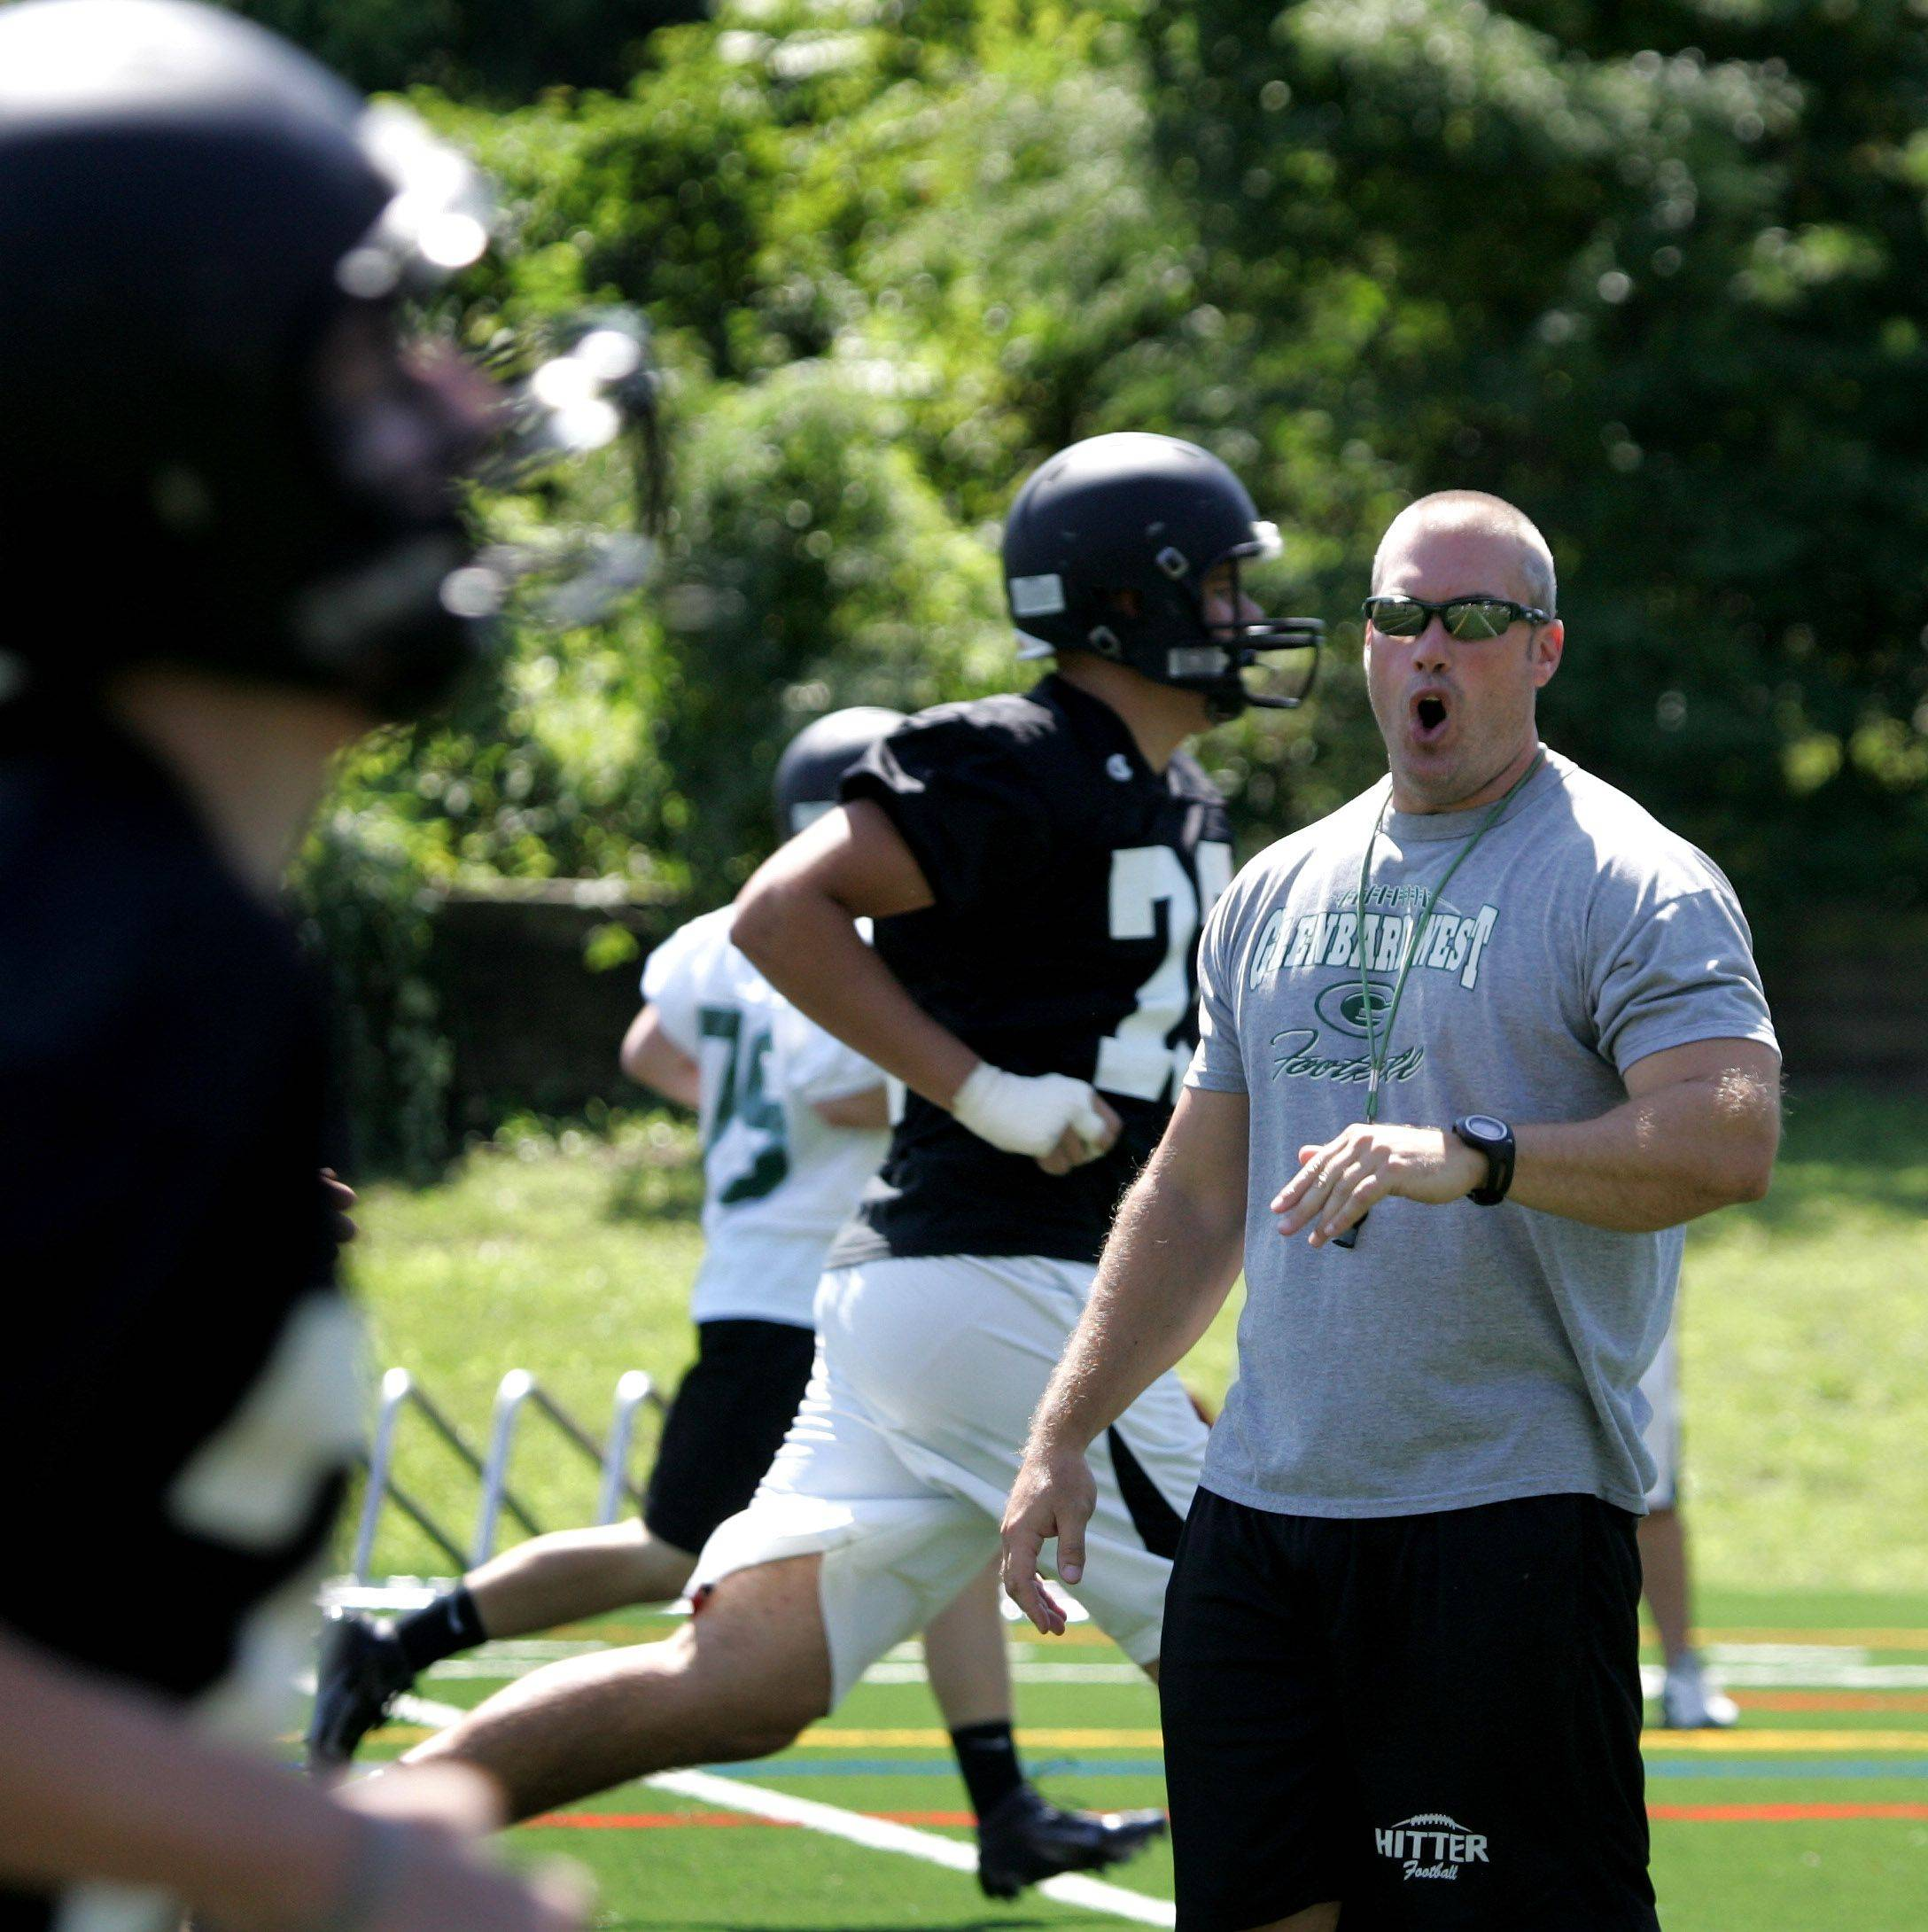 Glenbard West coach Chad Hetlet puts the team through running drills during the first day of football practice on Wednesday in Glen Ellyn.